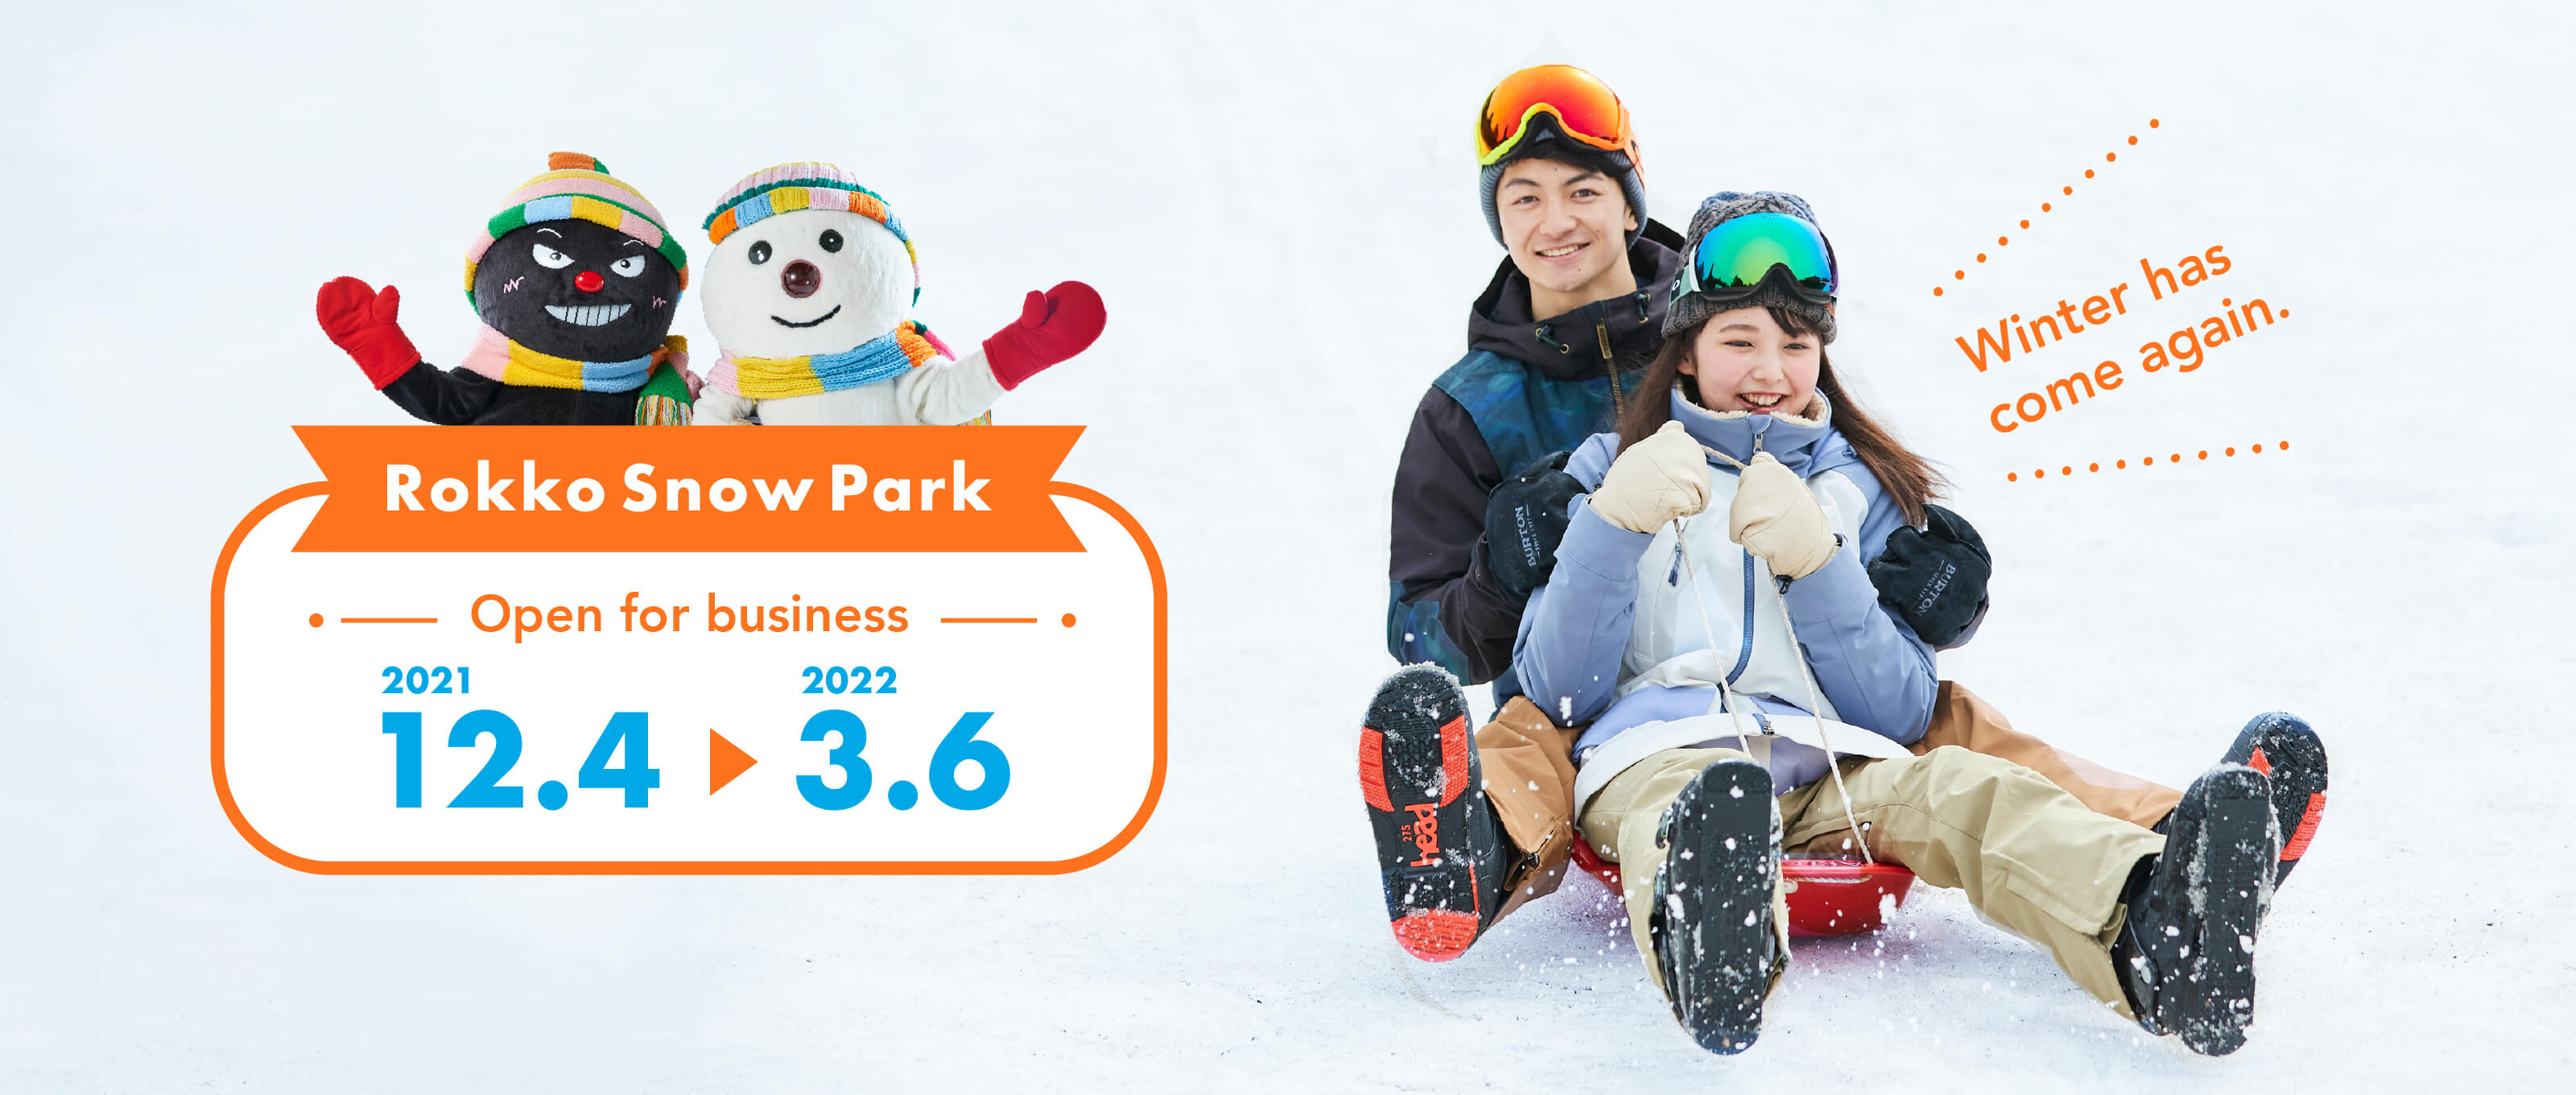 Snow park main image:So convenient and so much fun!Open for business 2018.11.17 - 2019.3.31